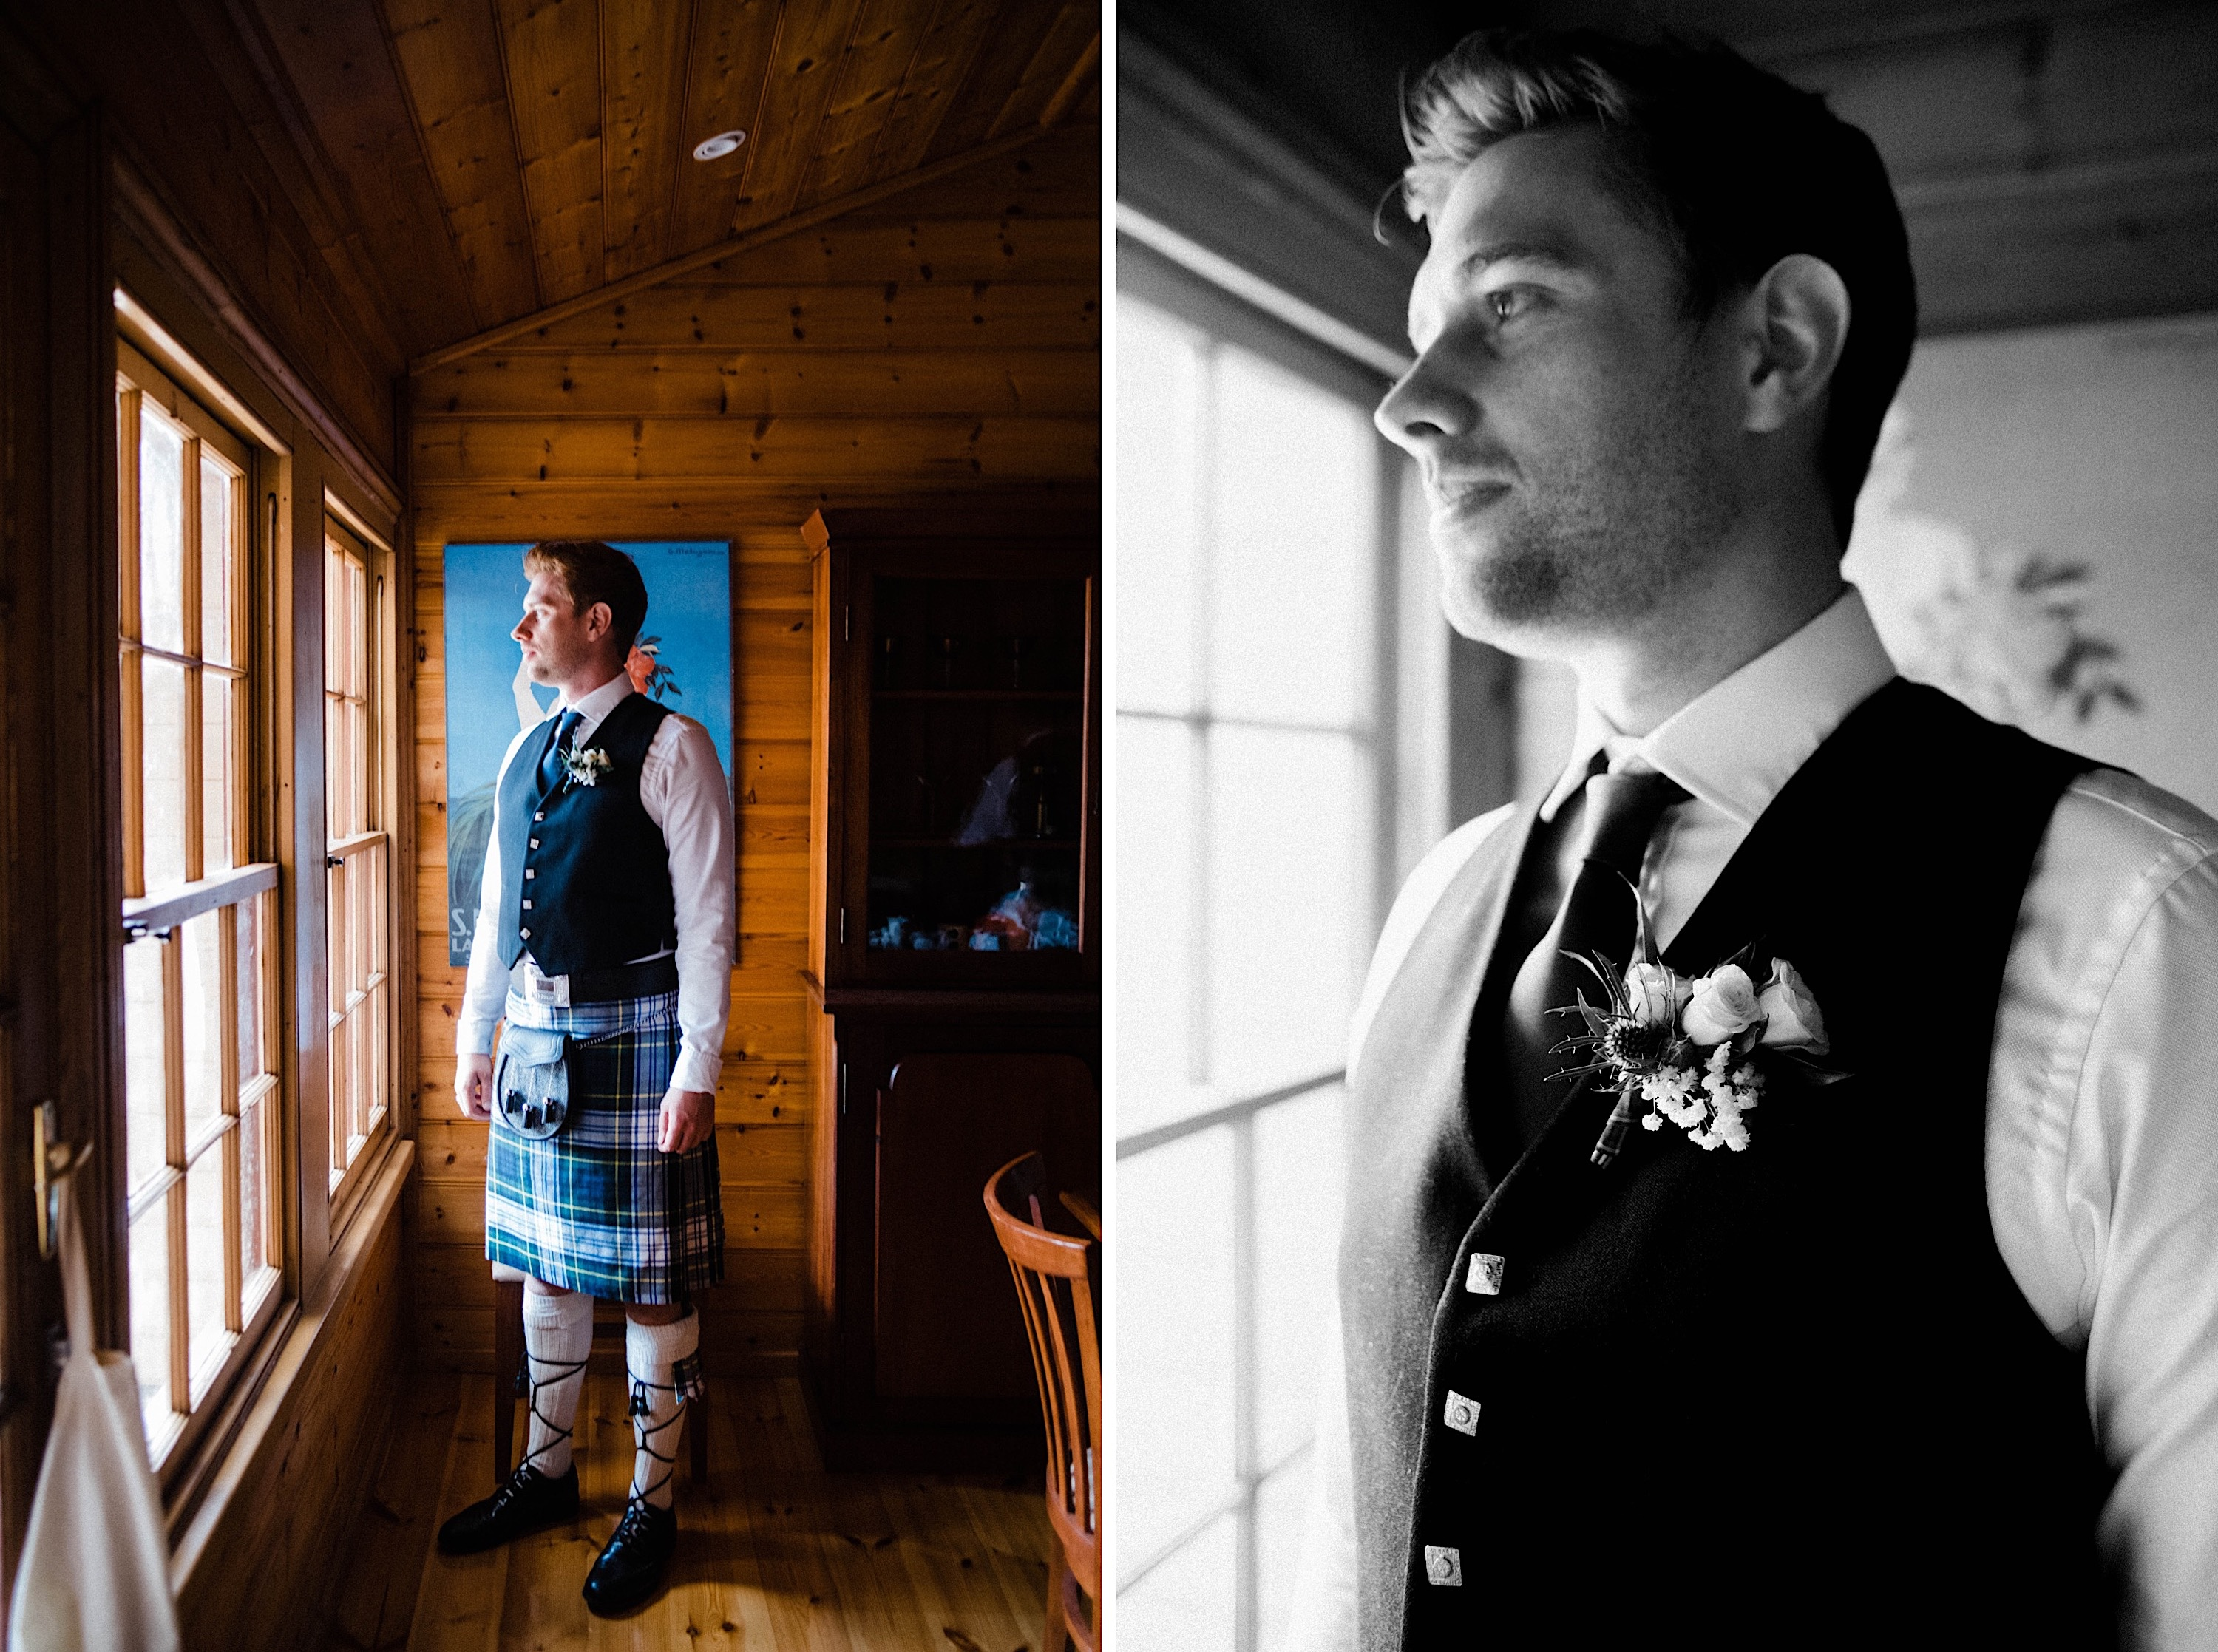 Two portraits of the groom dressed & ready for his wedding day in traditional Scottish clothing.